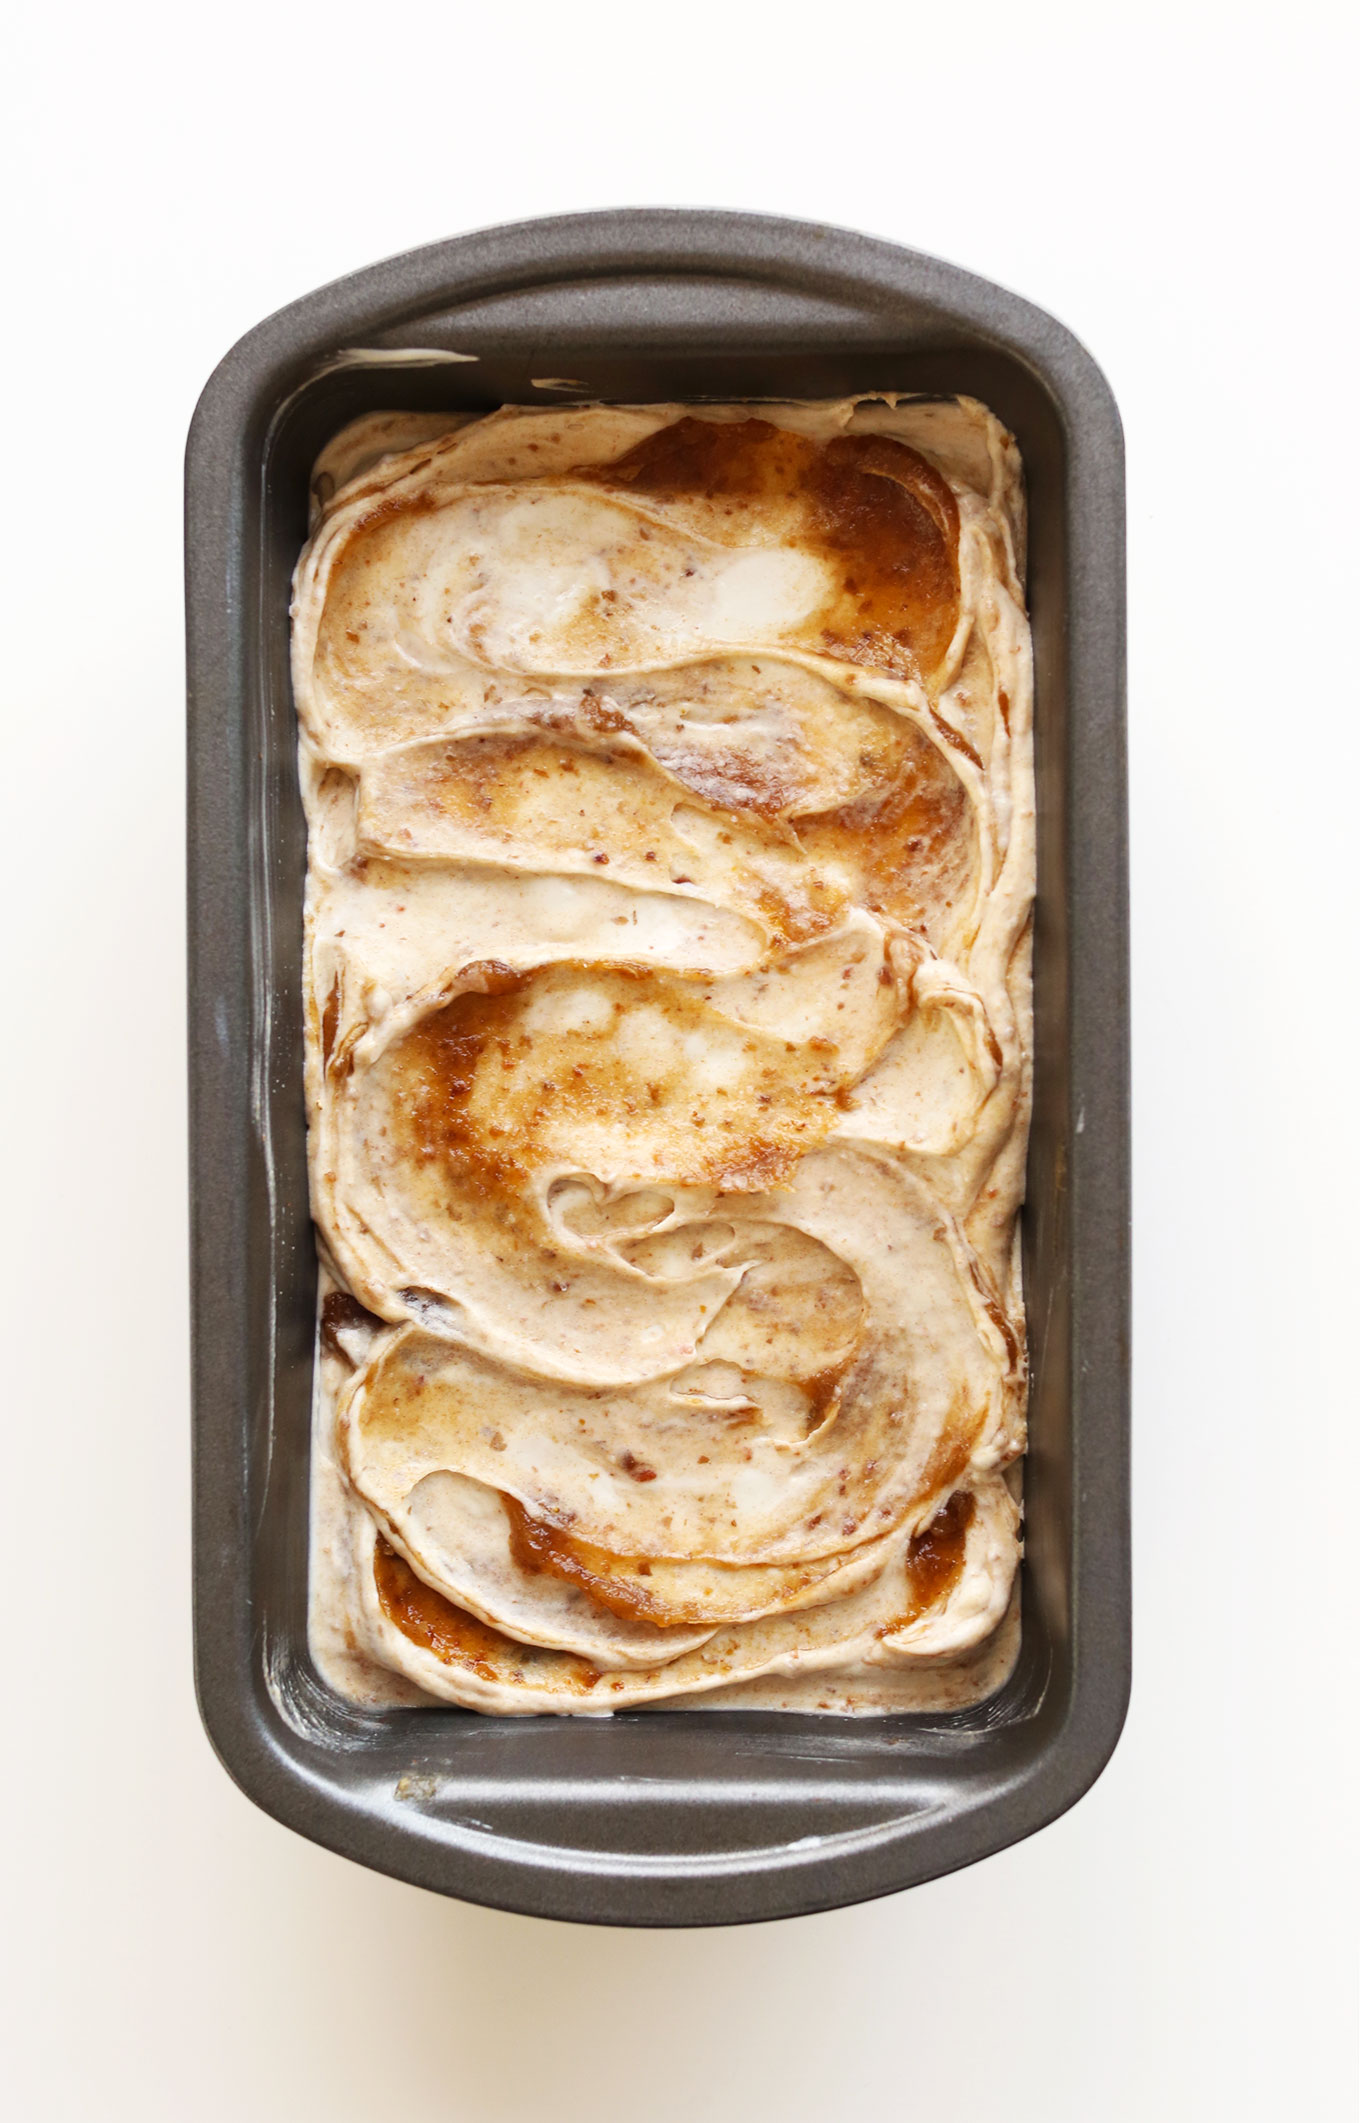 Baking pan filled with our Vegan Coconut Ice Cream with a Sea Salt Caramel swirl